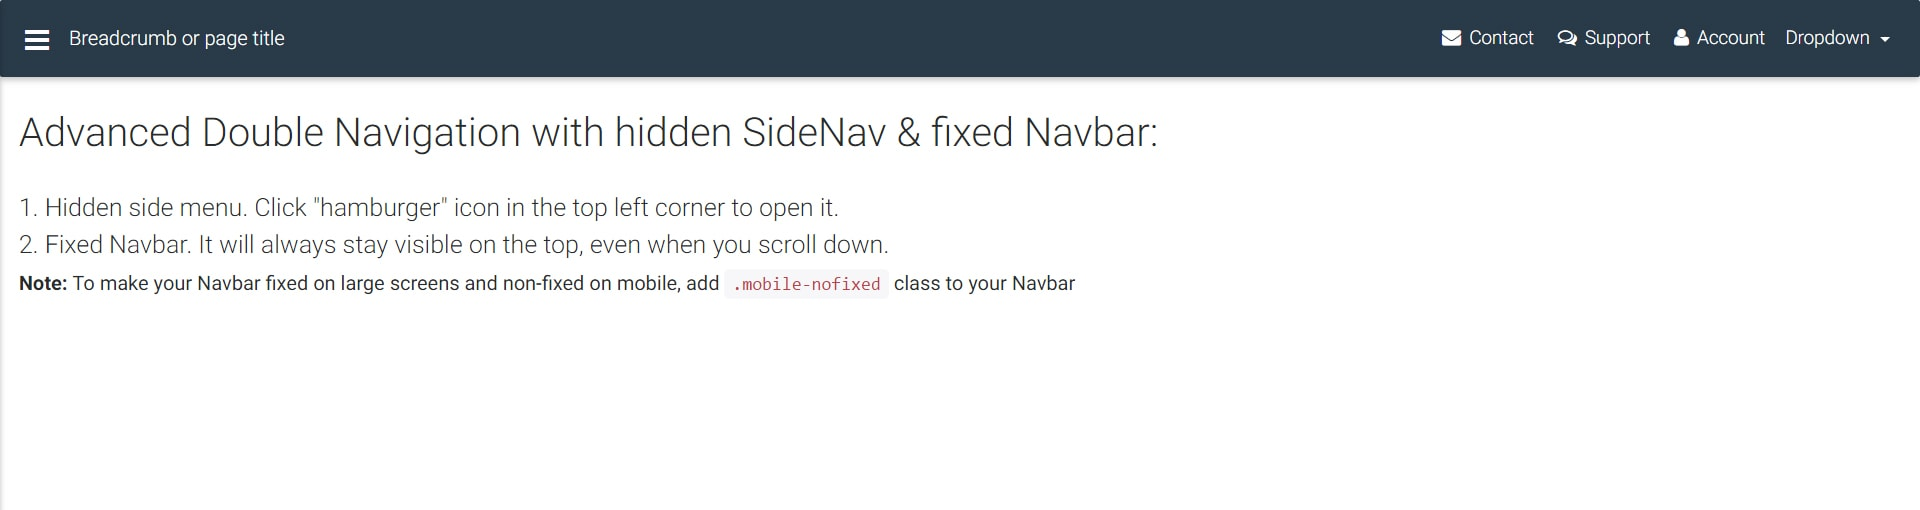 Display of double navigation with hidden SideNav & fixed Navbar